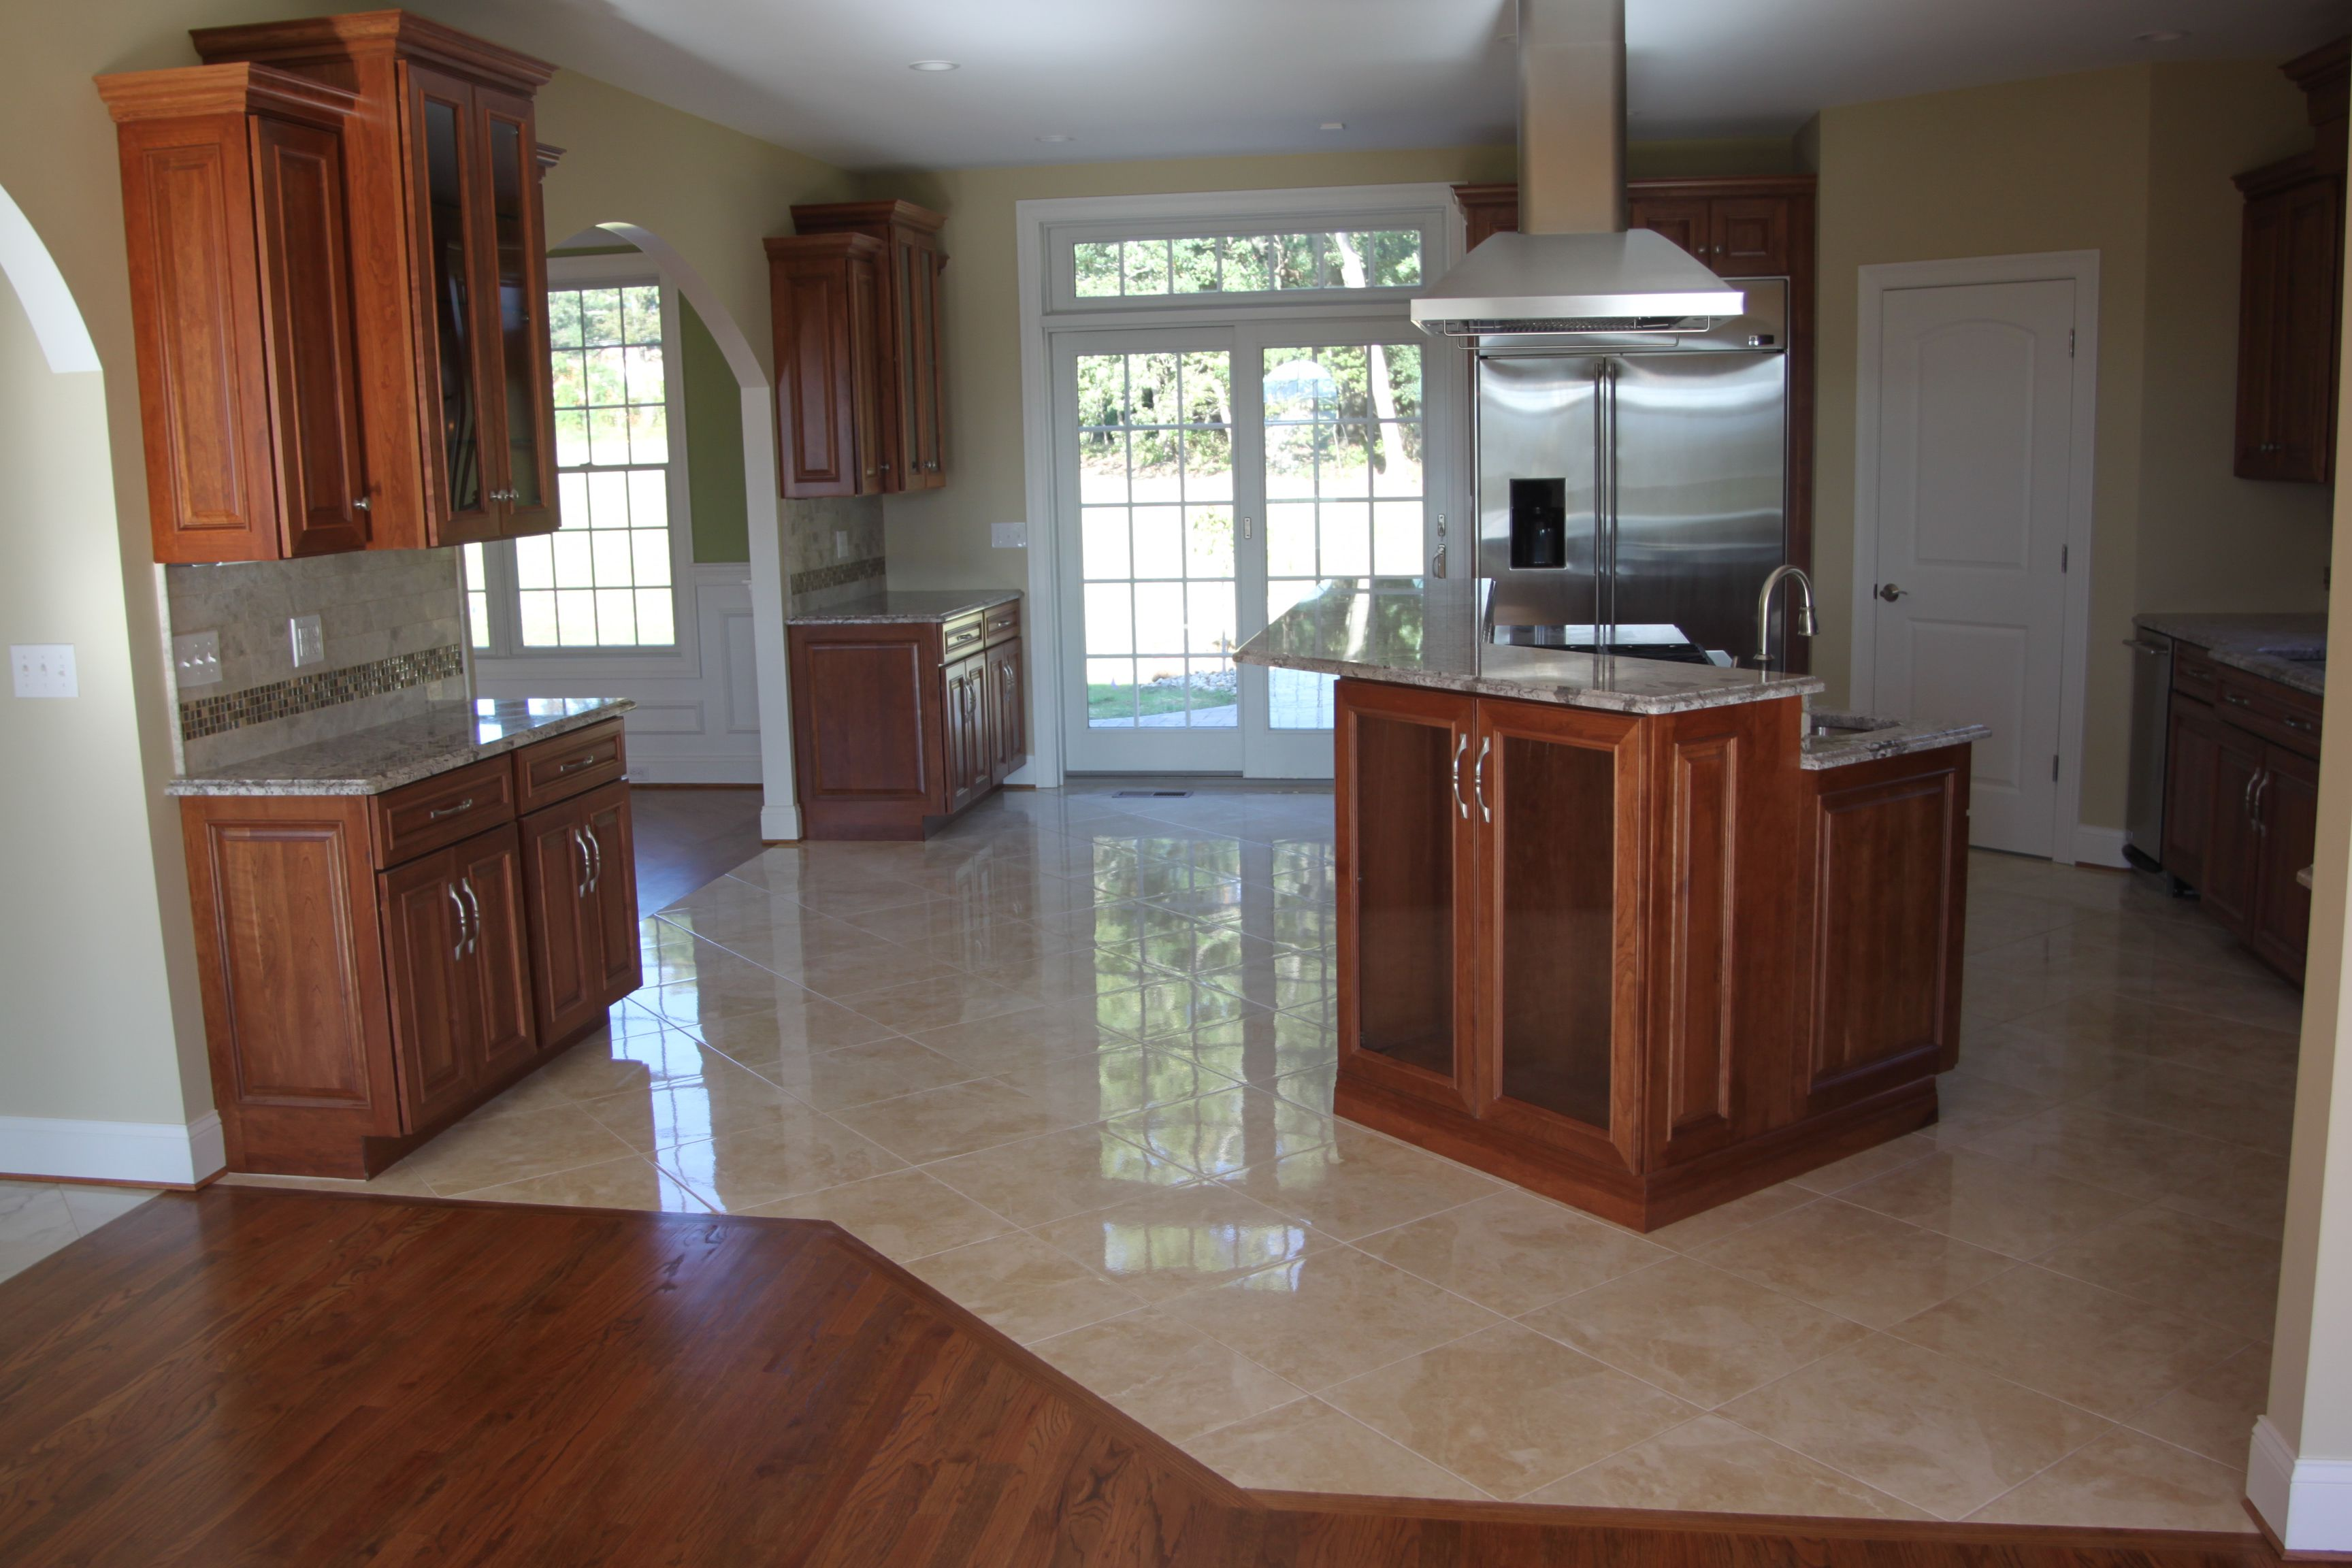 Floor tile designs ideas to enhance your floor appearance Kitchen floor designs